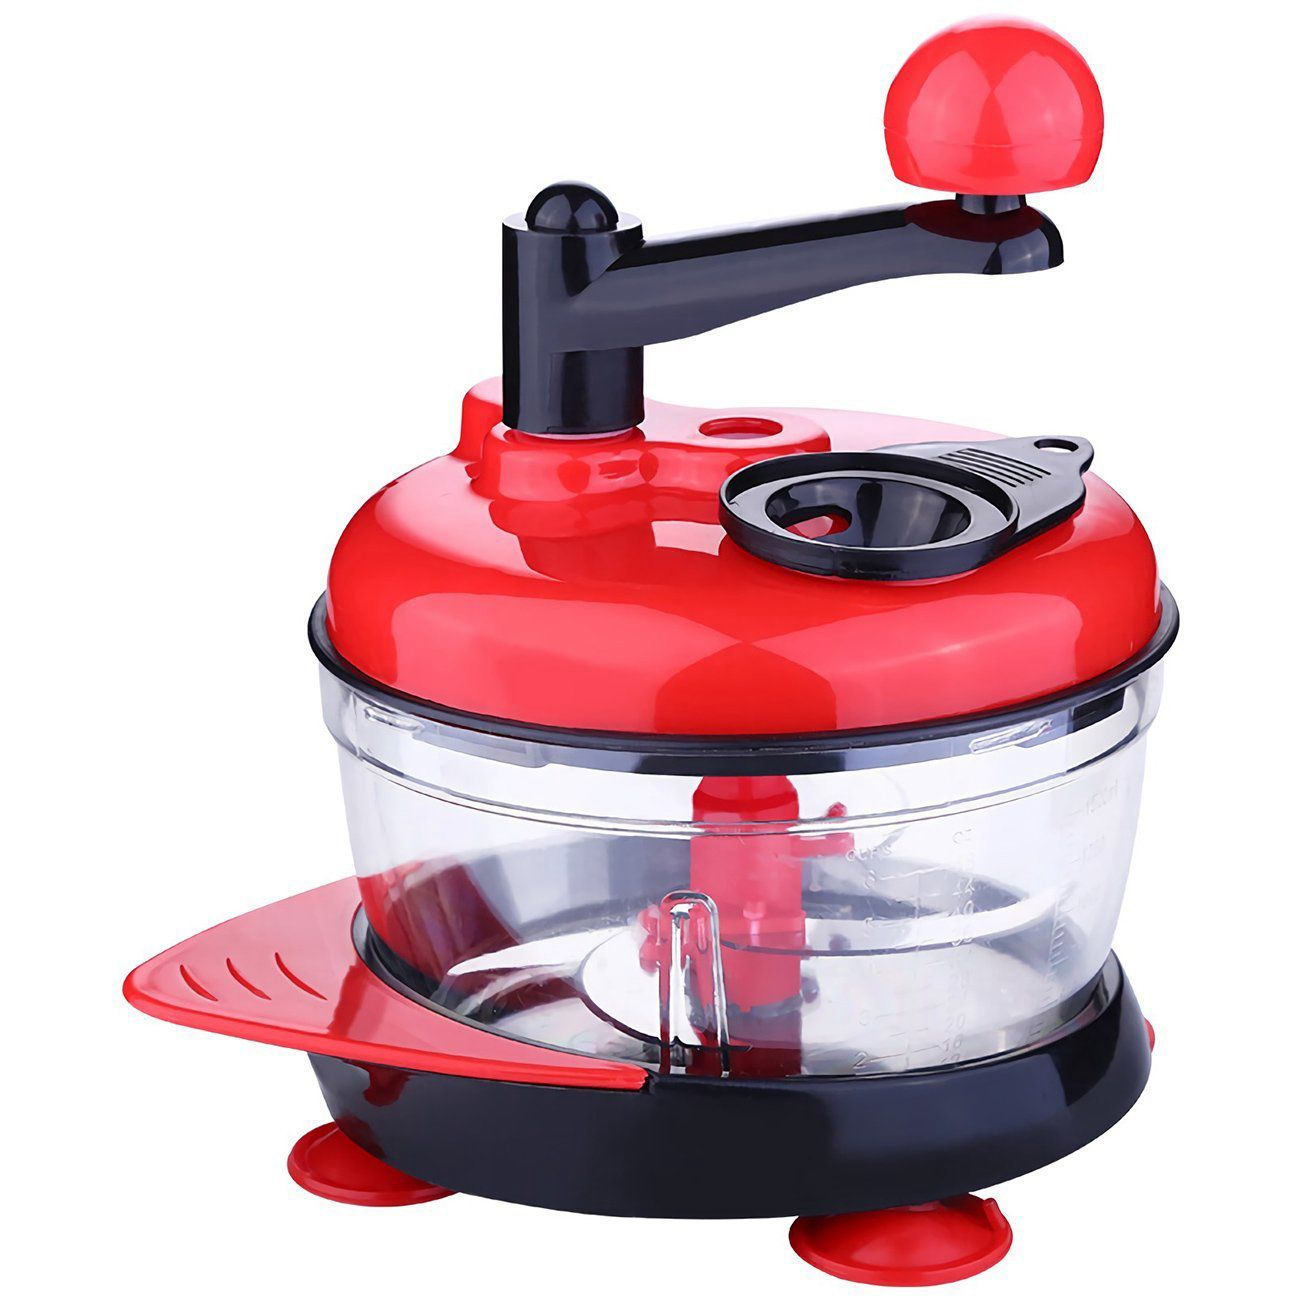 Multi-Function Manual Food Processor Meat Grinder Vegetable Chopper Shredder Cutter Egg Blender High-capacity Kitchen Fruit